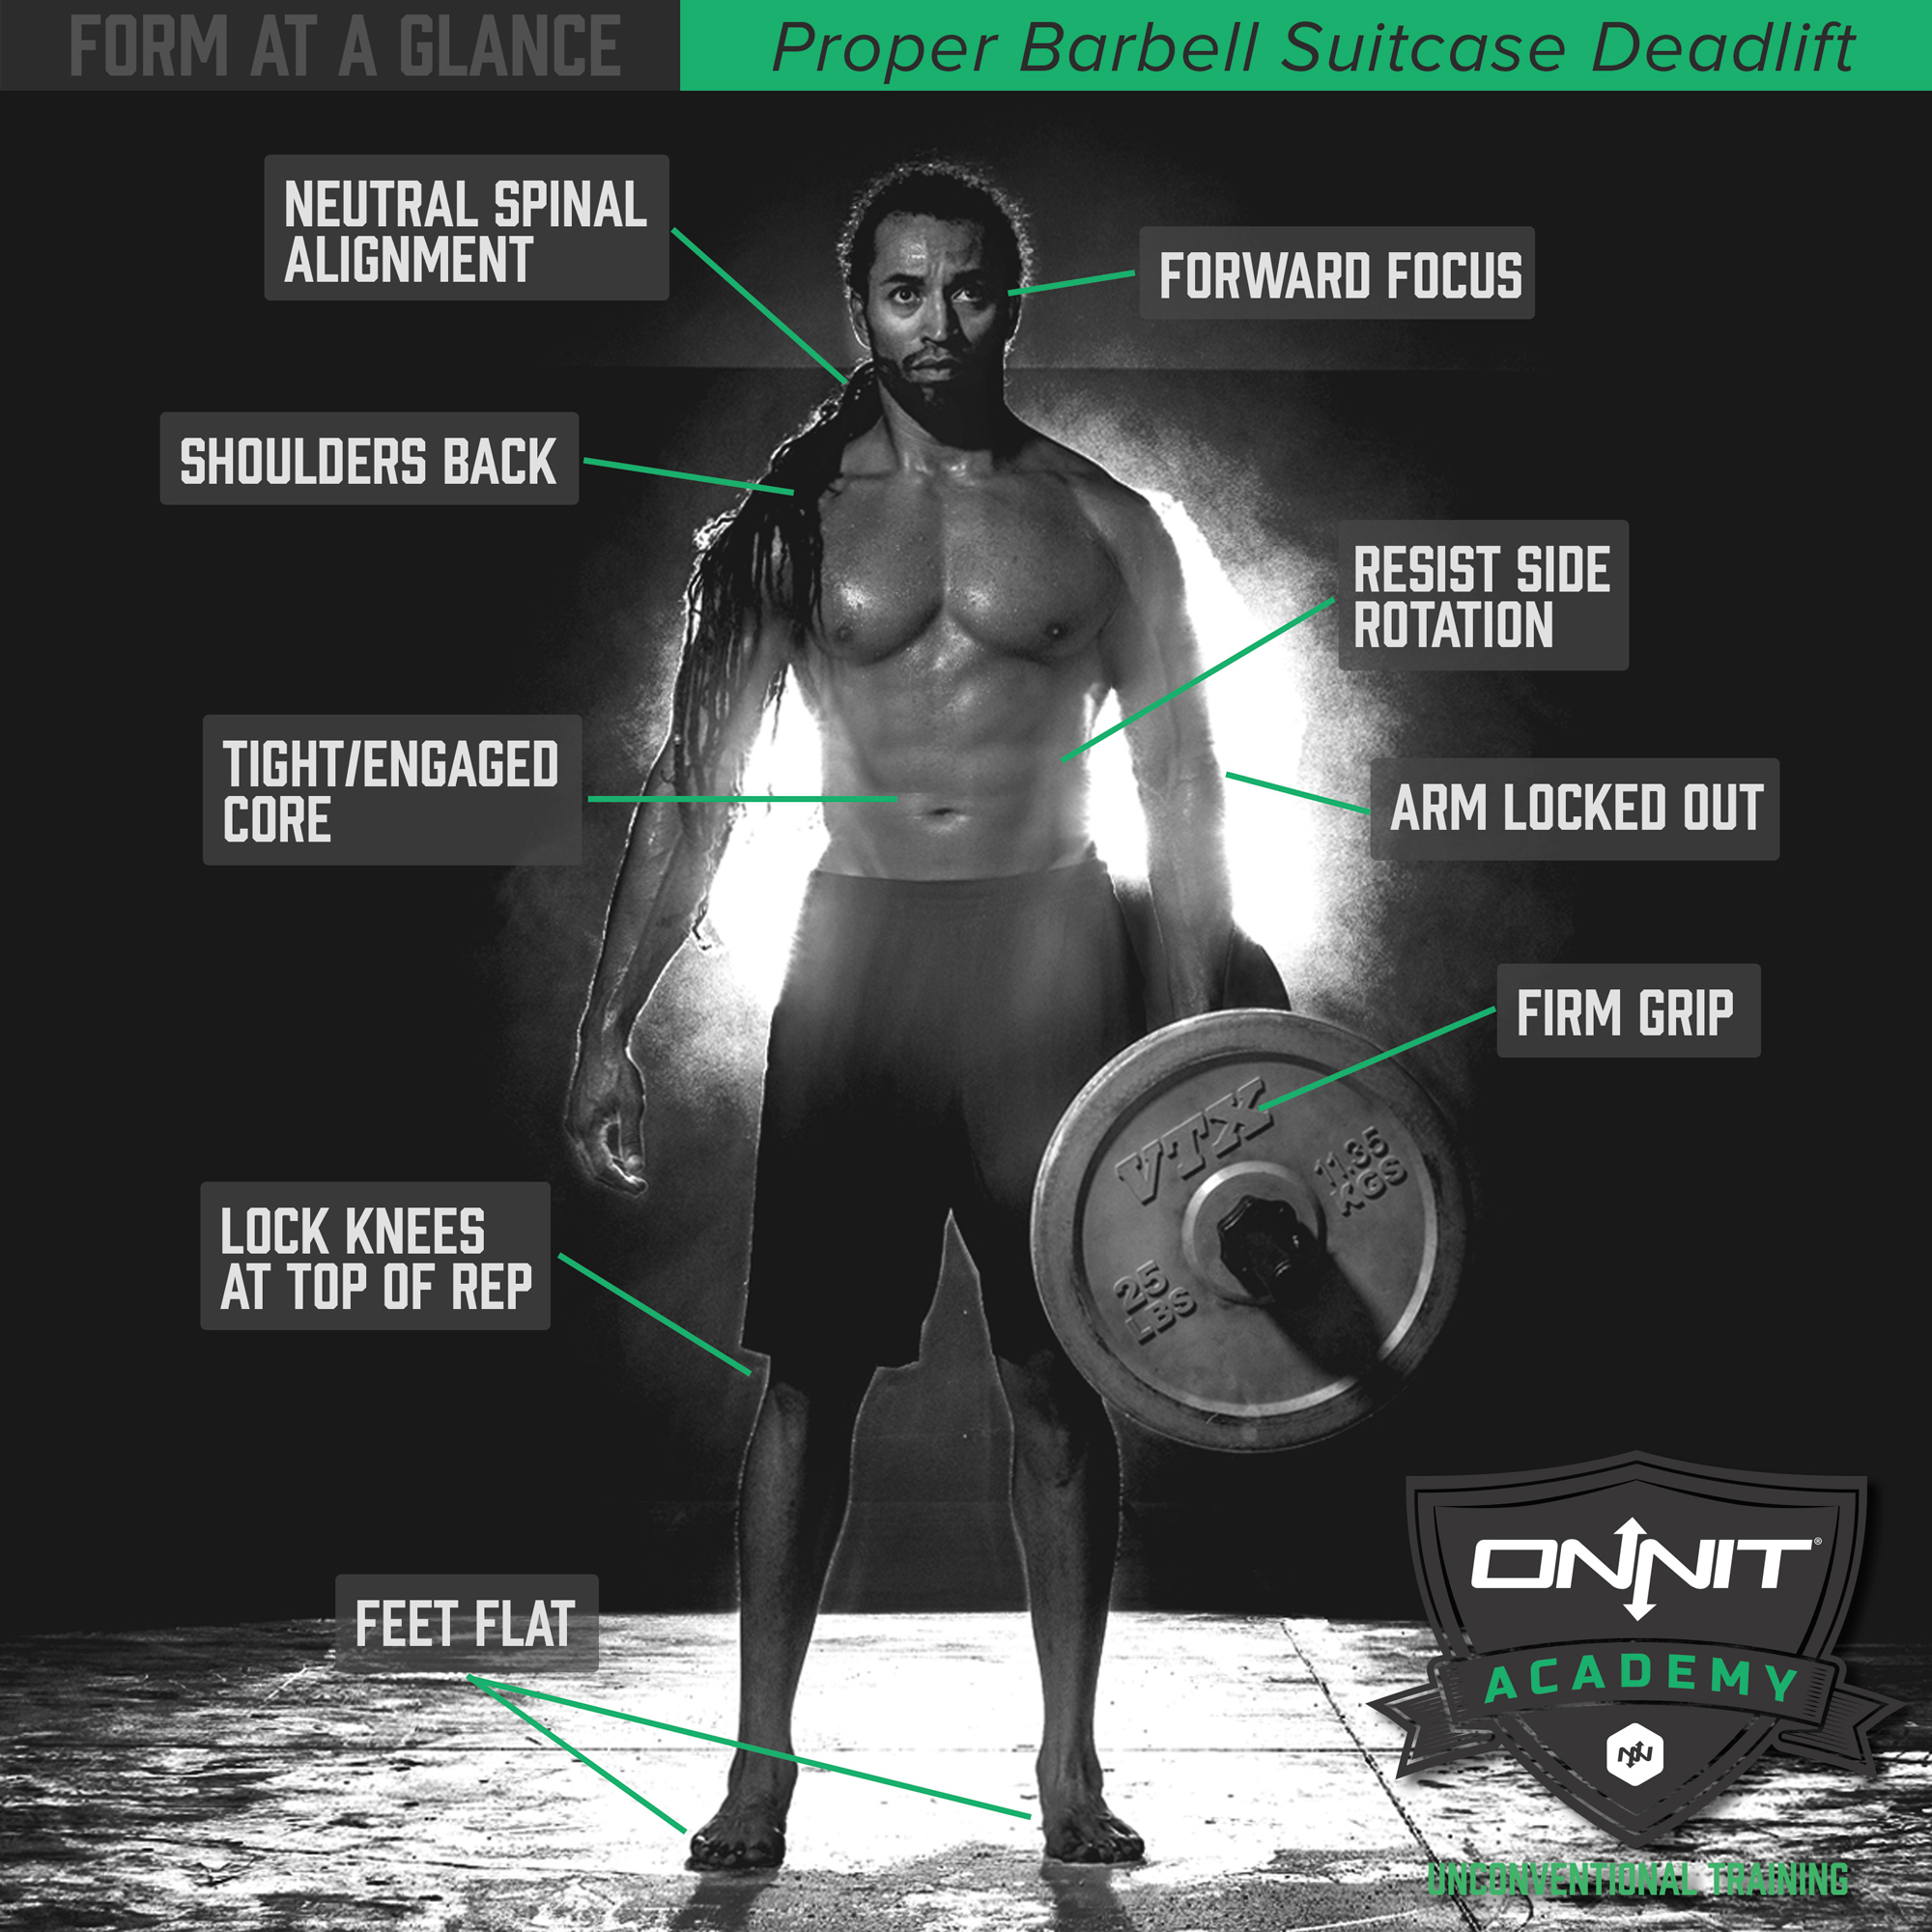 Exercise Kettlebell Deadlift: Form At A Glance: Barbell Suitcase Deadlift